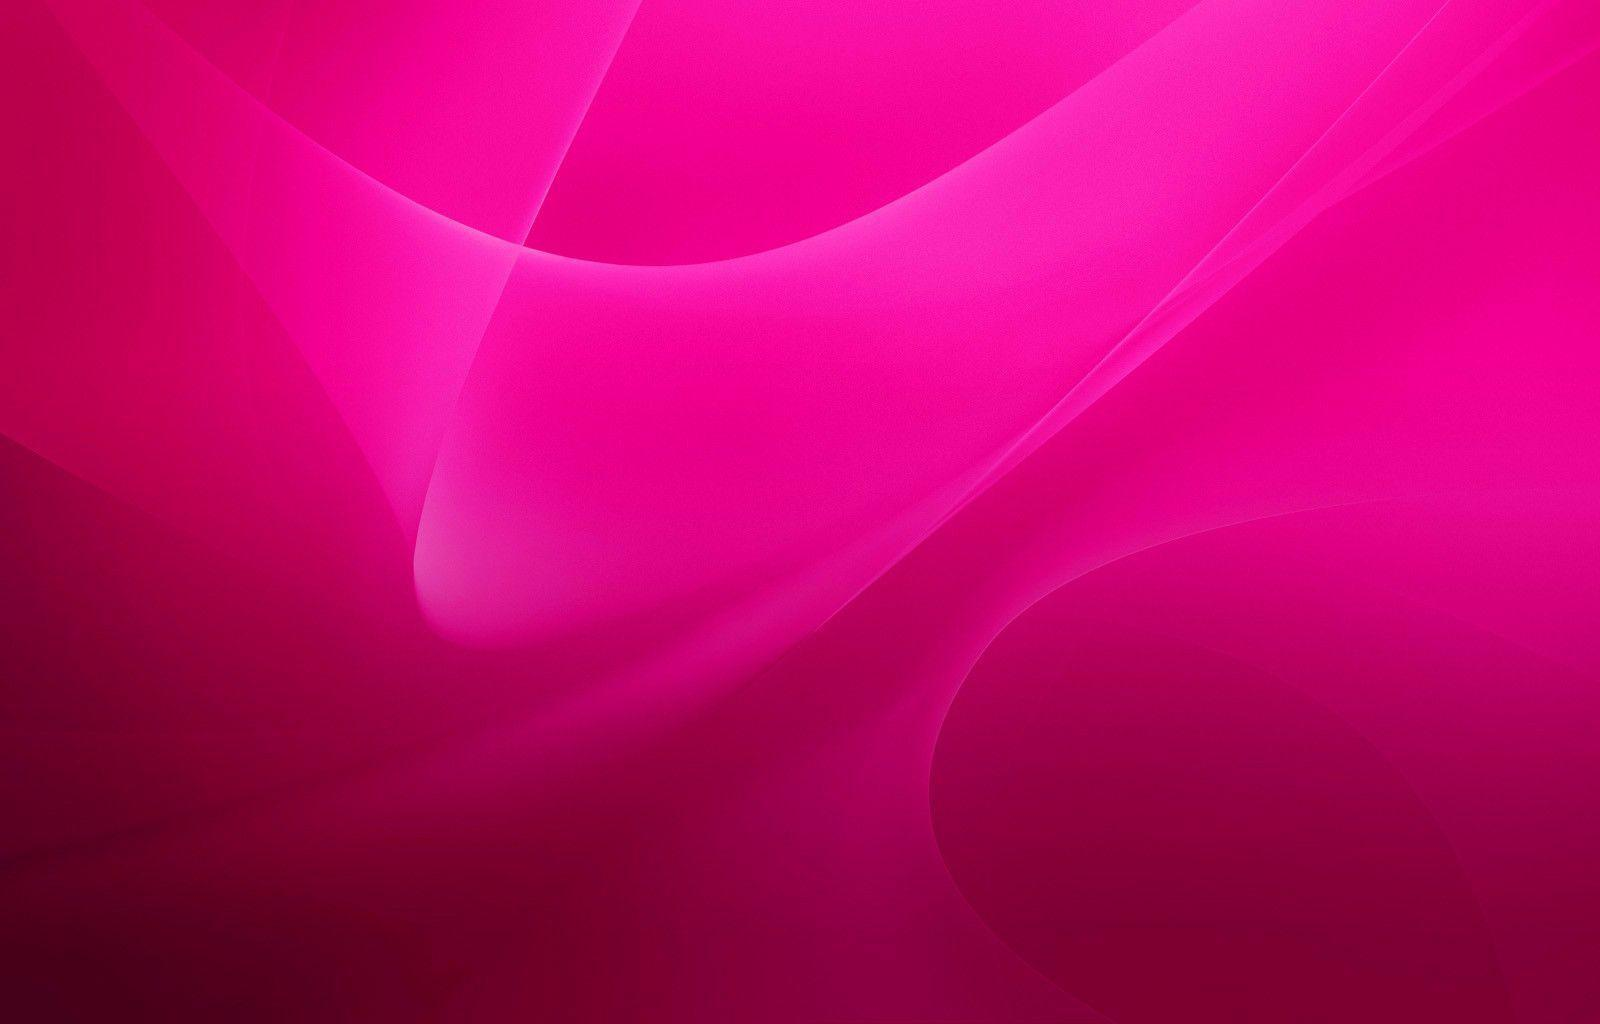 pink mac wallpaper hd - photo #19